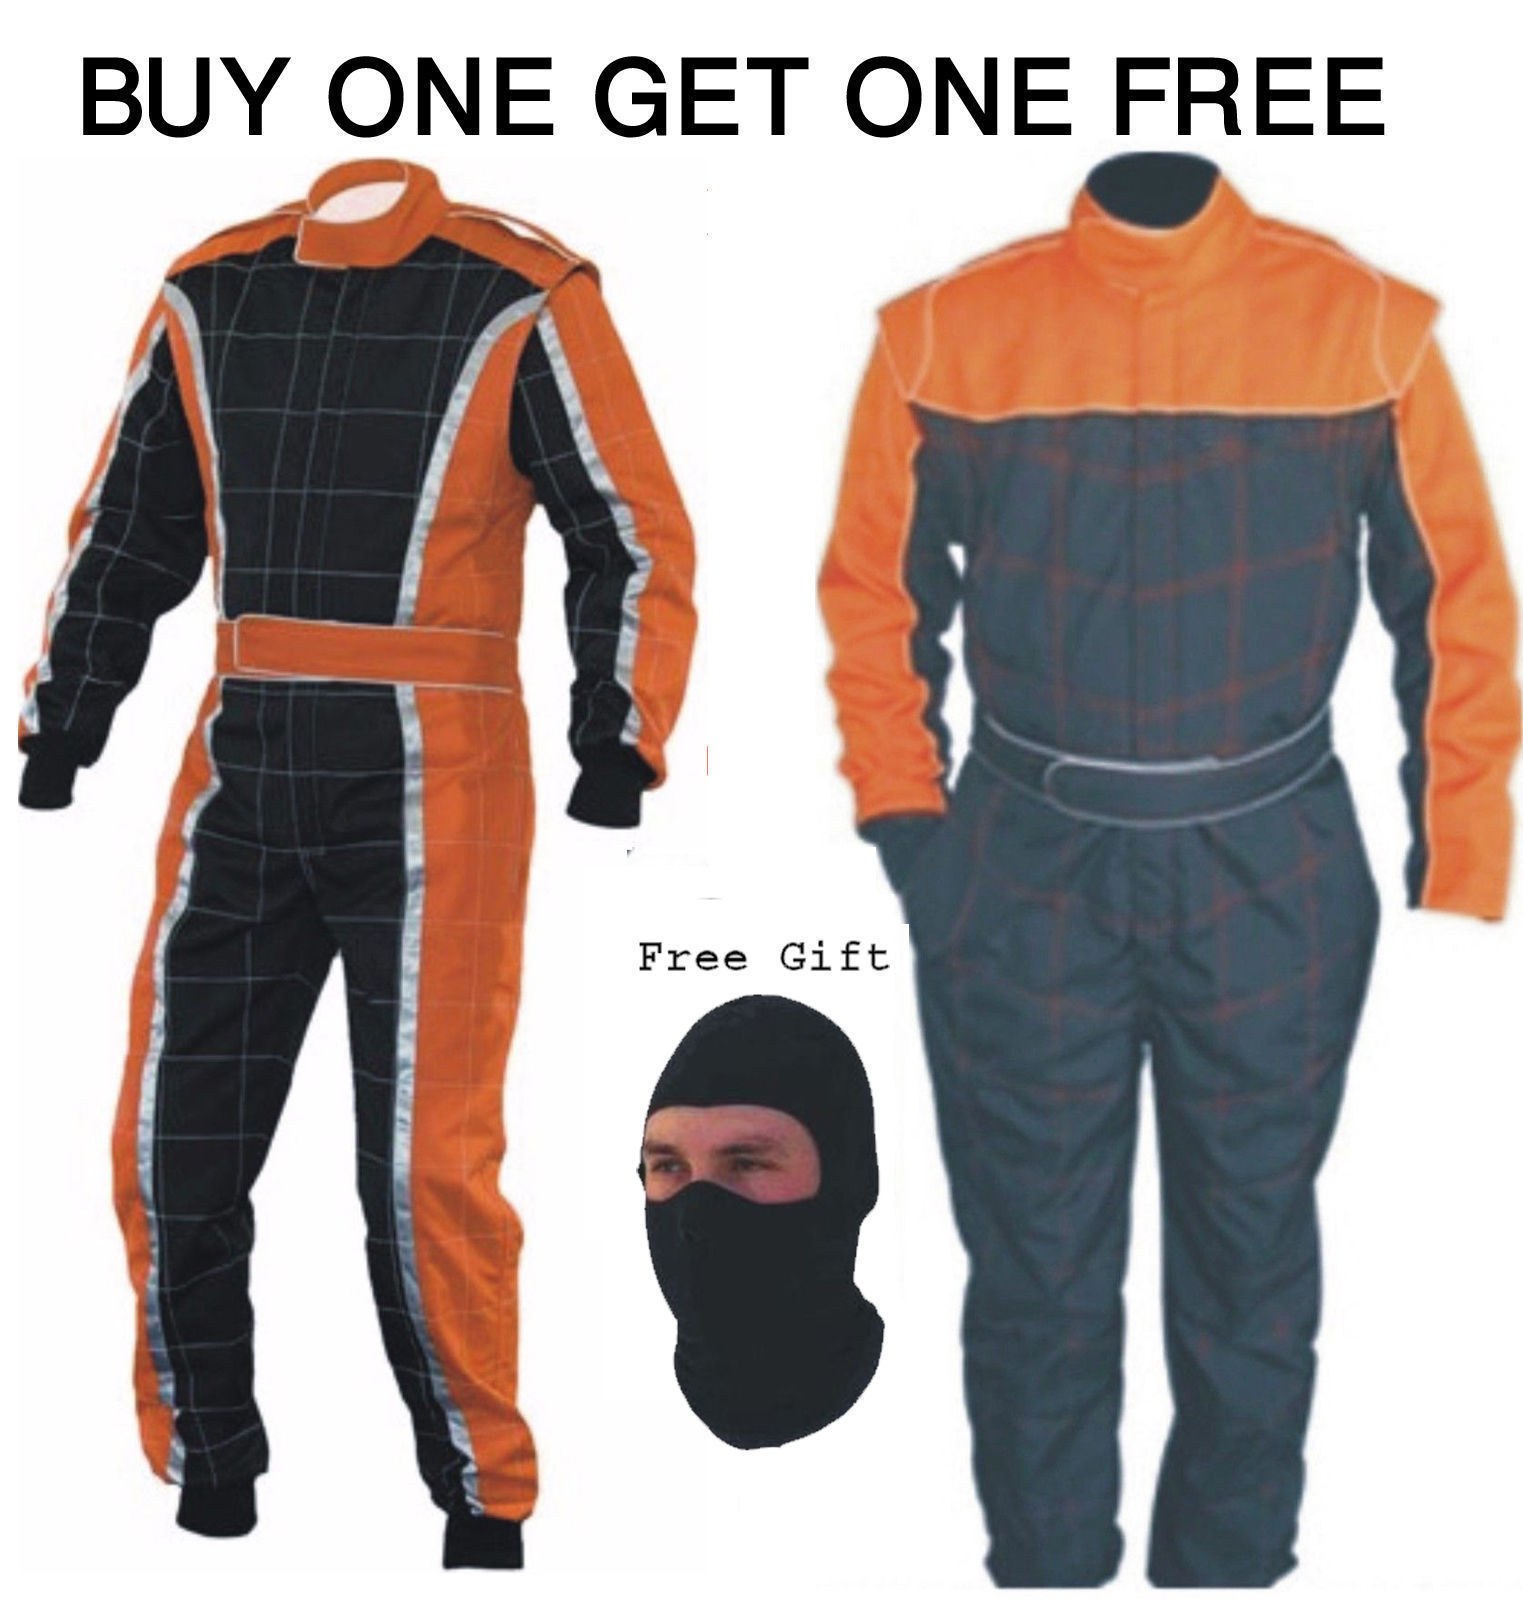 Latest Design Go Kart Race Suit Pack Buy One Get One Free (Free gifts included)